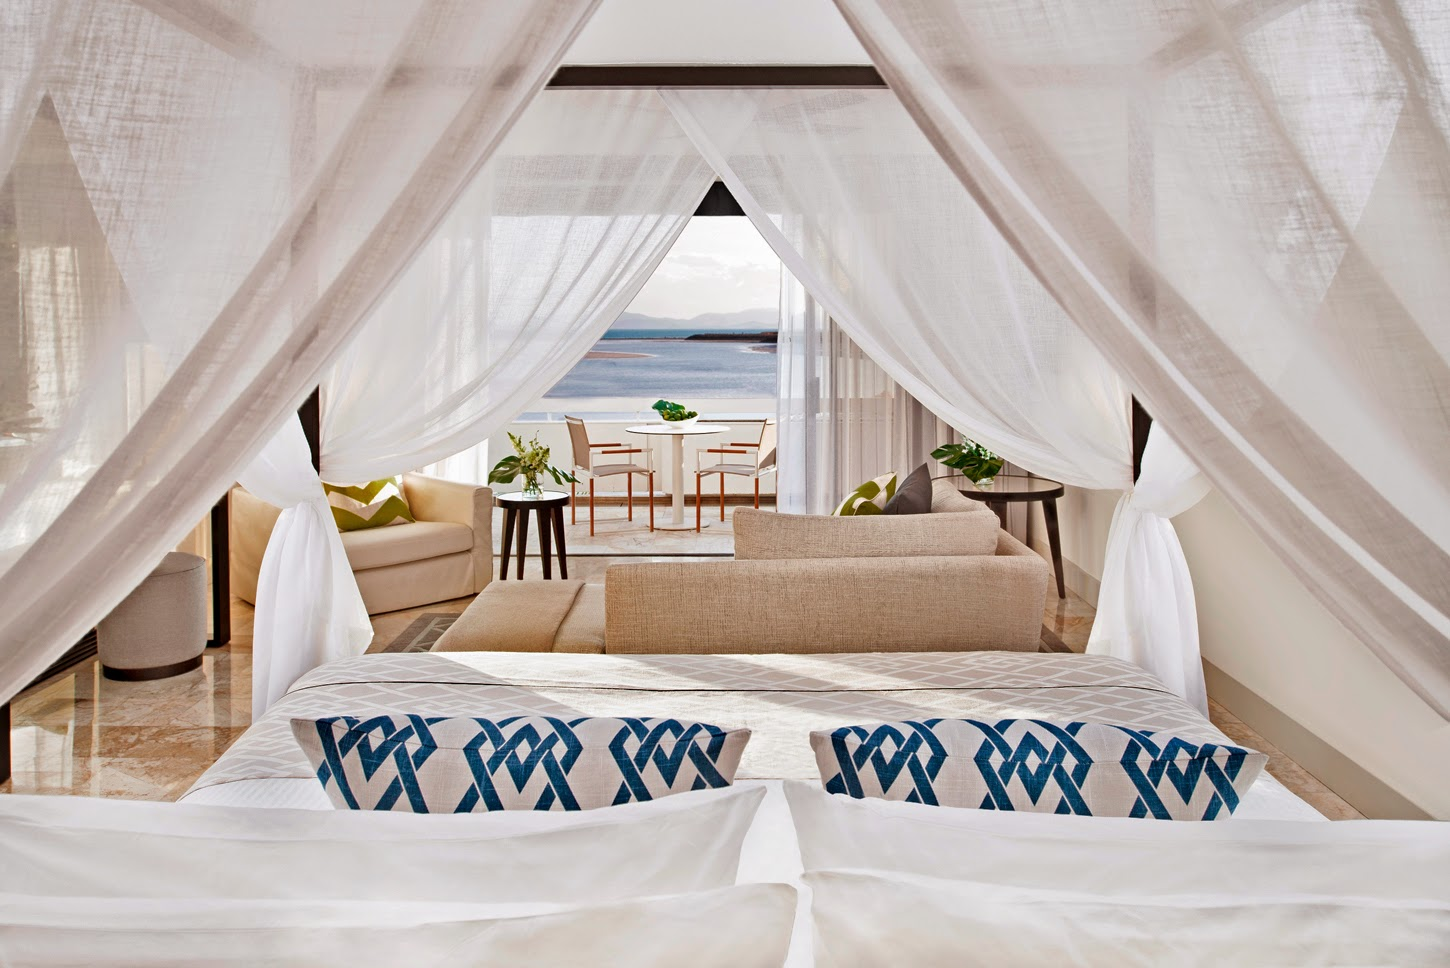 kee hua chee live!: one&only hayman island opens in australia's